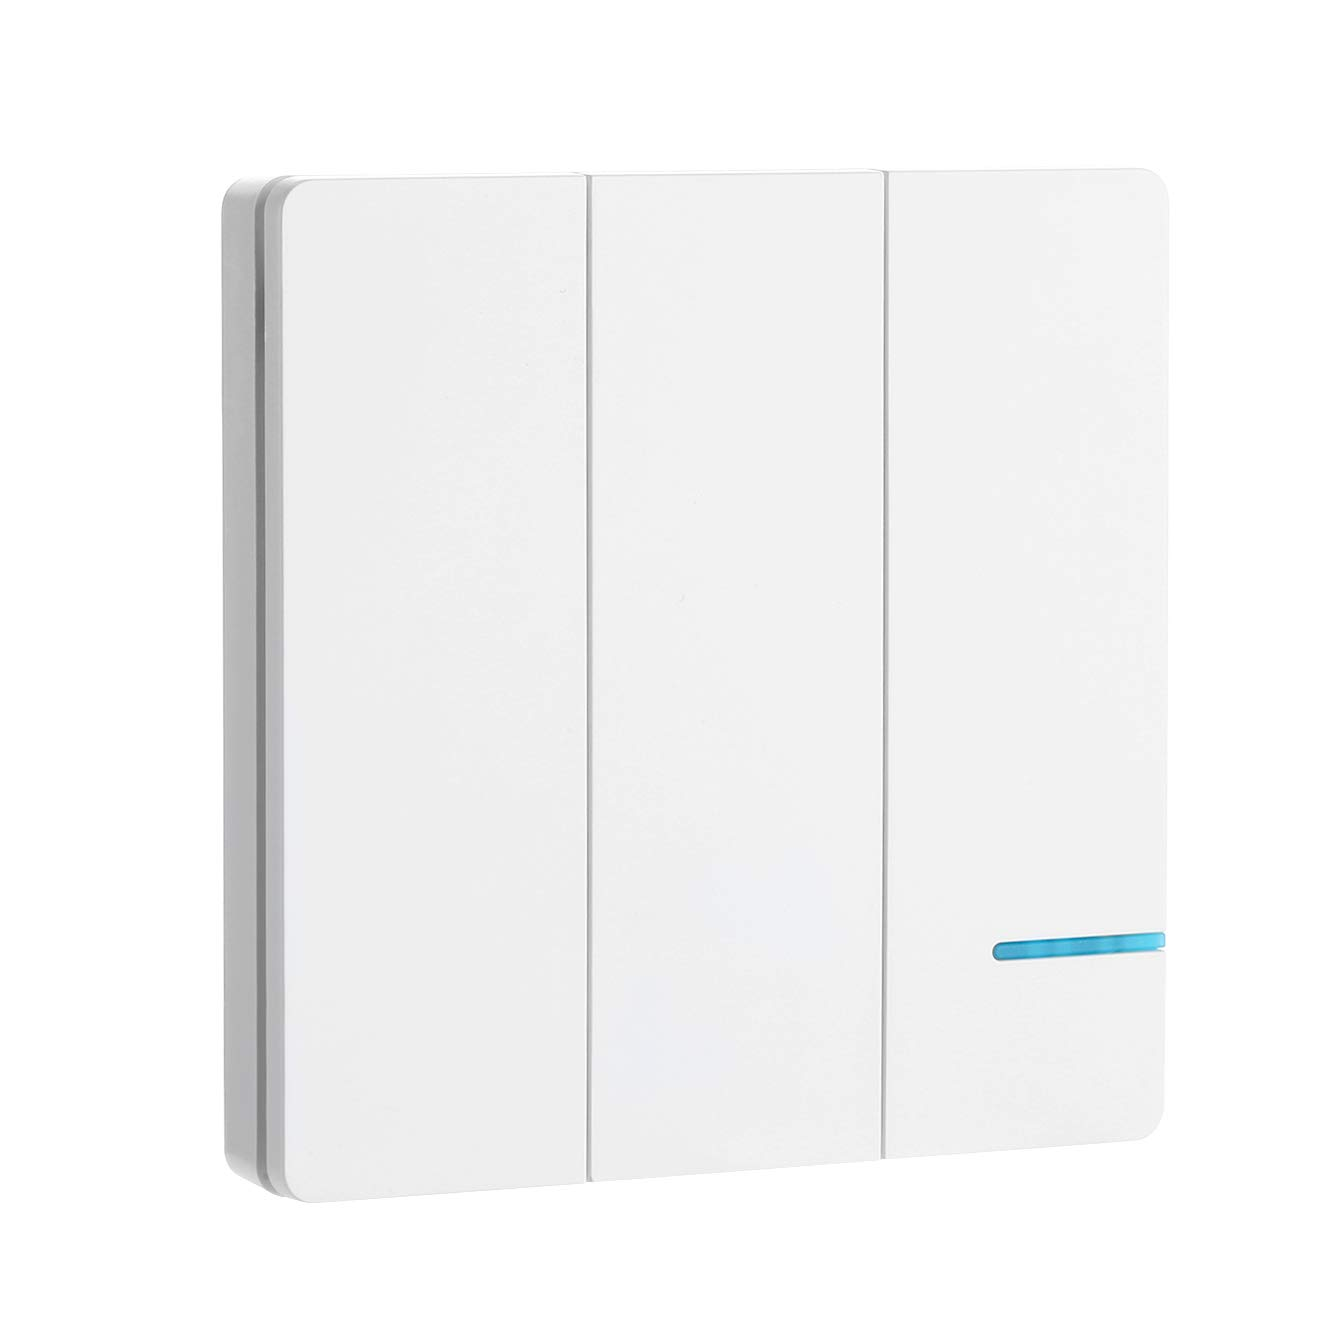 wallpad White 3 Gang Frameless Wireless Remote Wall Switch Kits With 3 Receivers, Mounting Anywhere Wiring, No WiFi, No Tearing the wall, No APP, On/Off Switch for Lamps, LED Lights, Fan Appliances (Contains 3 Gang Switch & 3 Receivers) Wallpad Electric